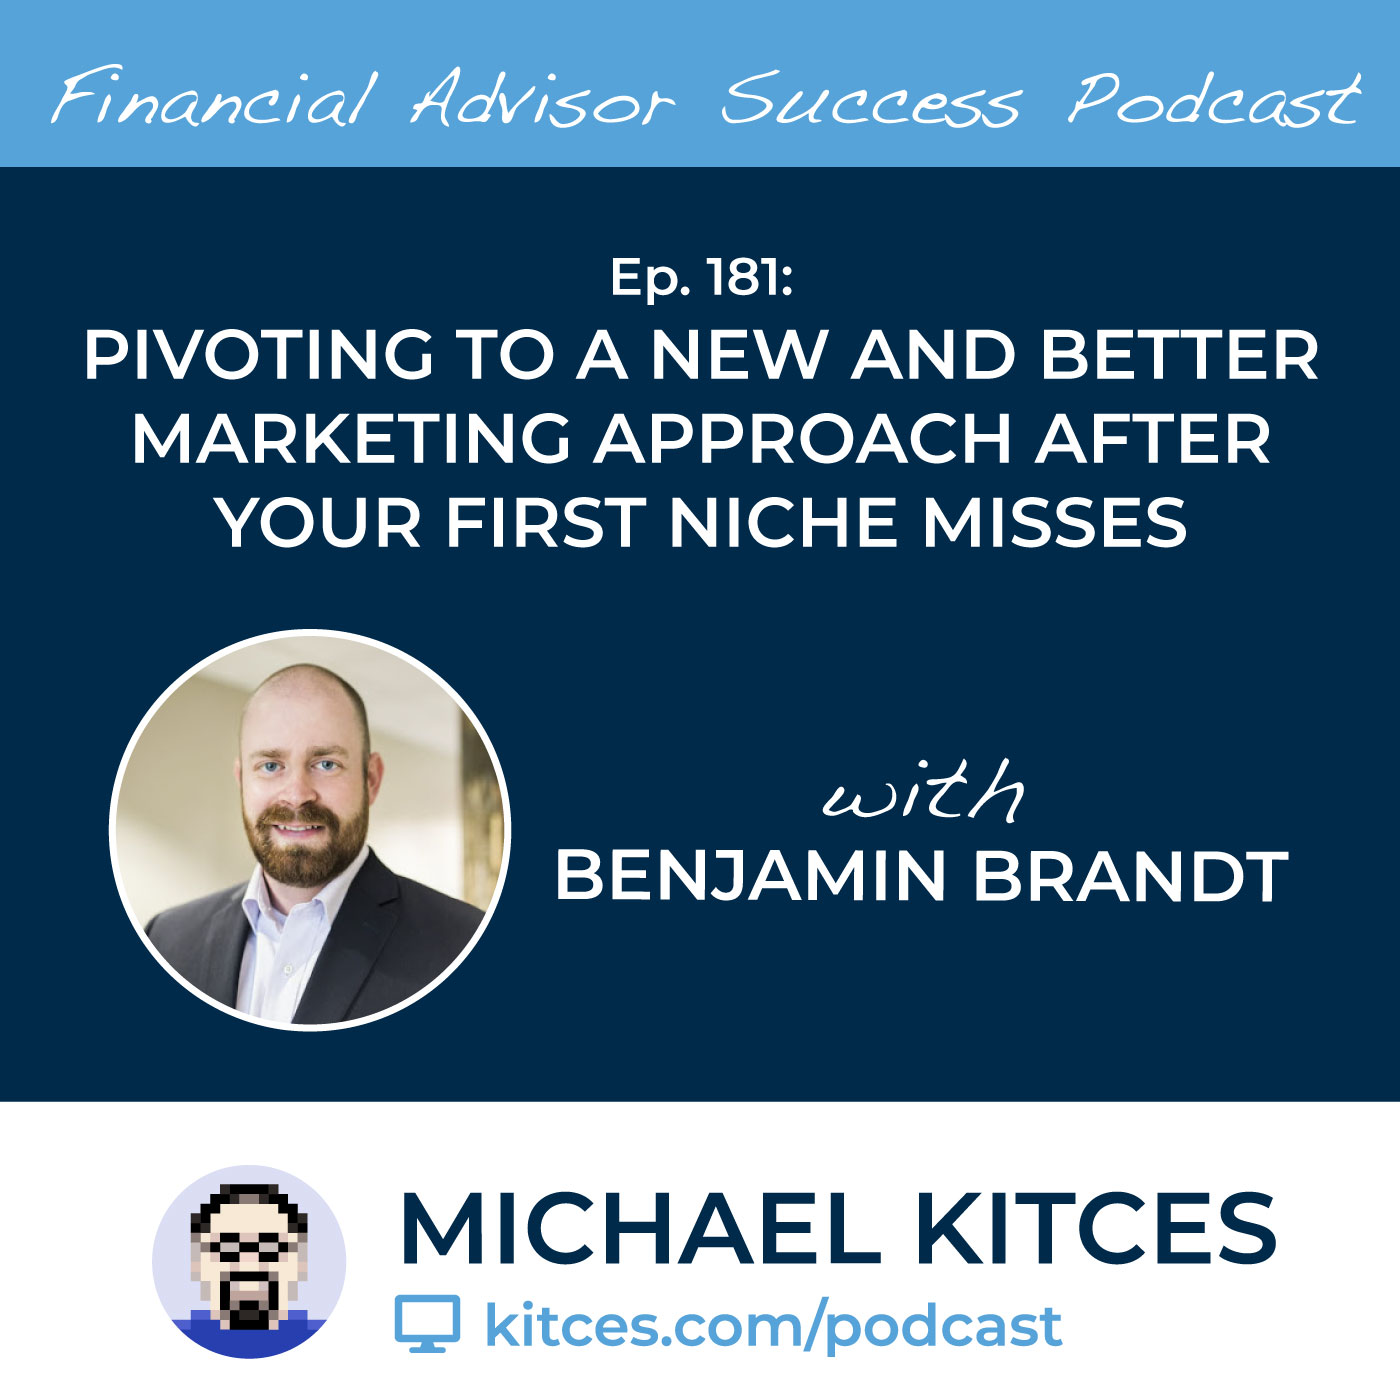 Ep 181: Pivoting To A New And Better Marketing Approach After Your First Niche Misses with Benjamin Brandt